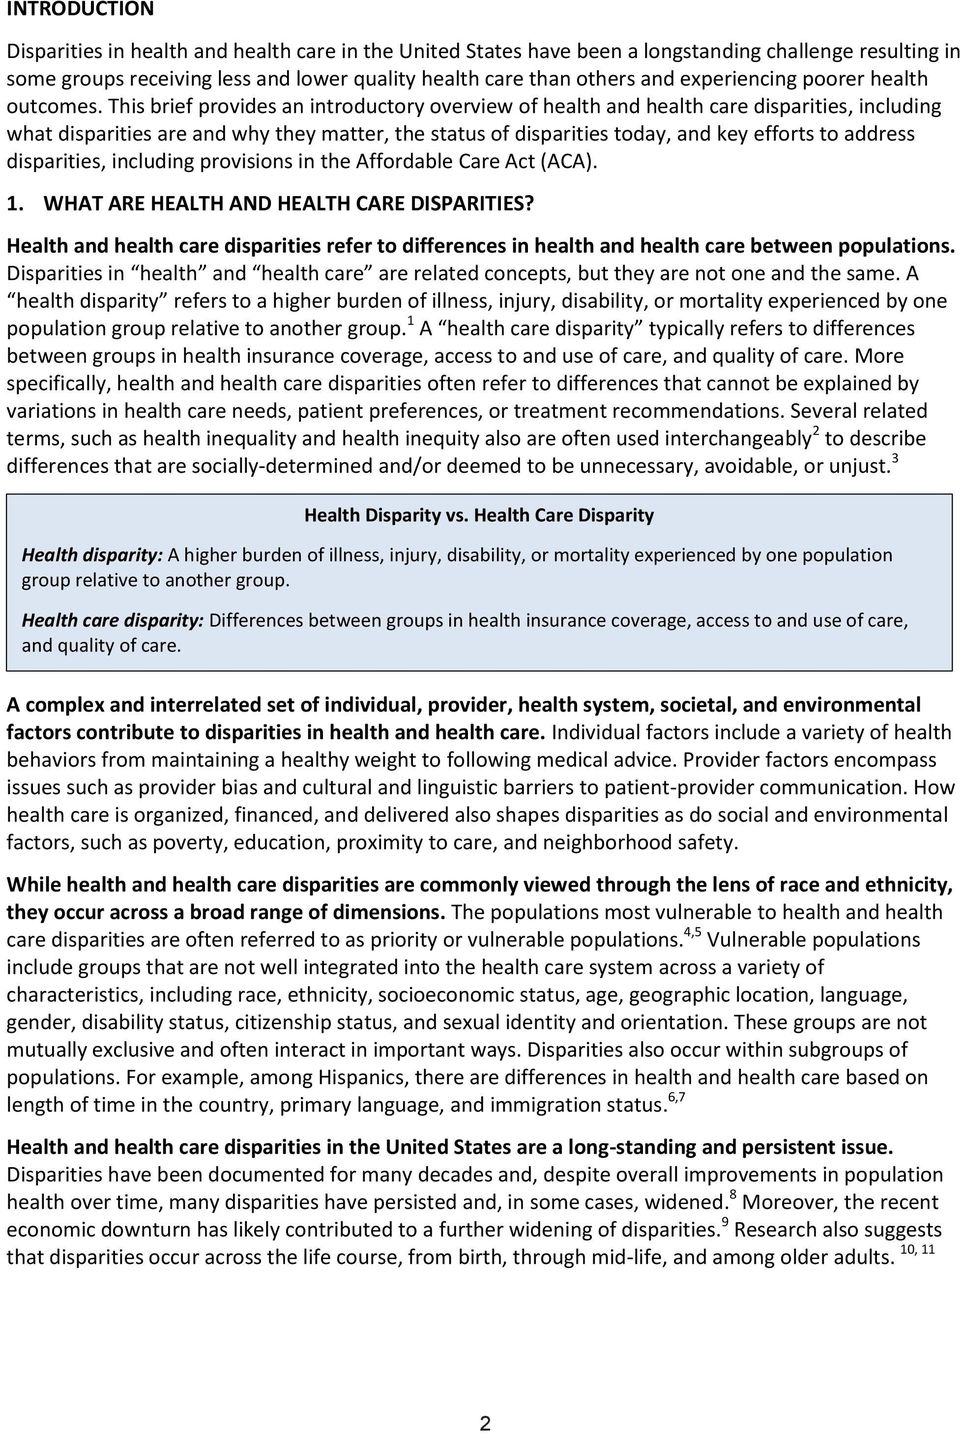 This brief provides an introductory overview of health and health care disparities, including what disparities are and why they matter, the status of disparities today, and key efforts to address